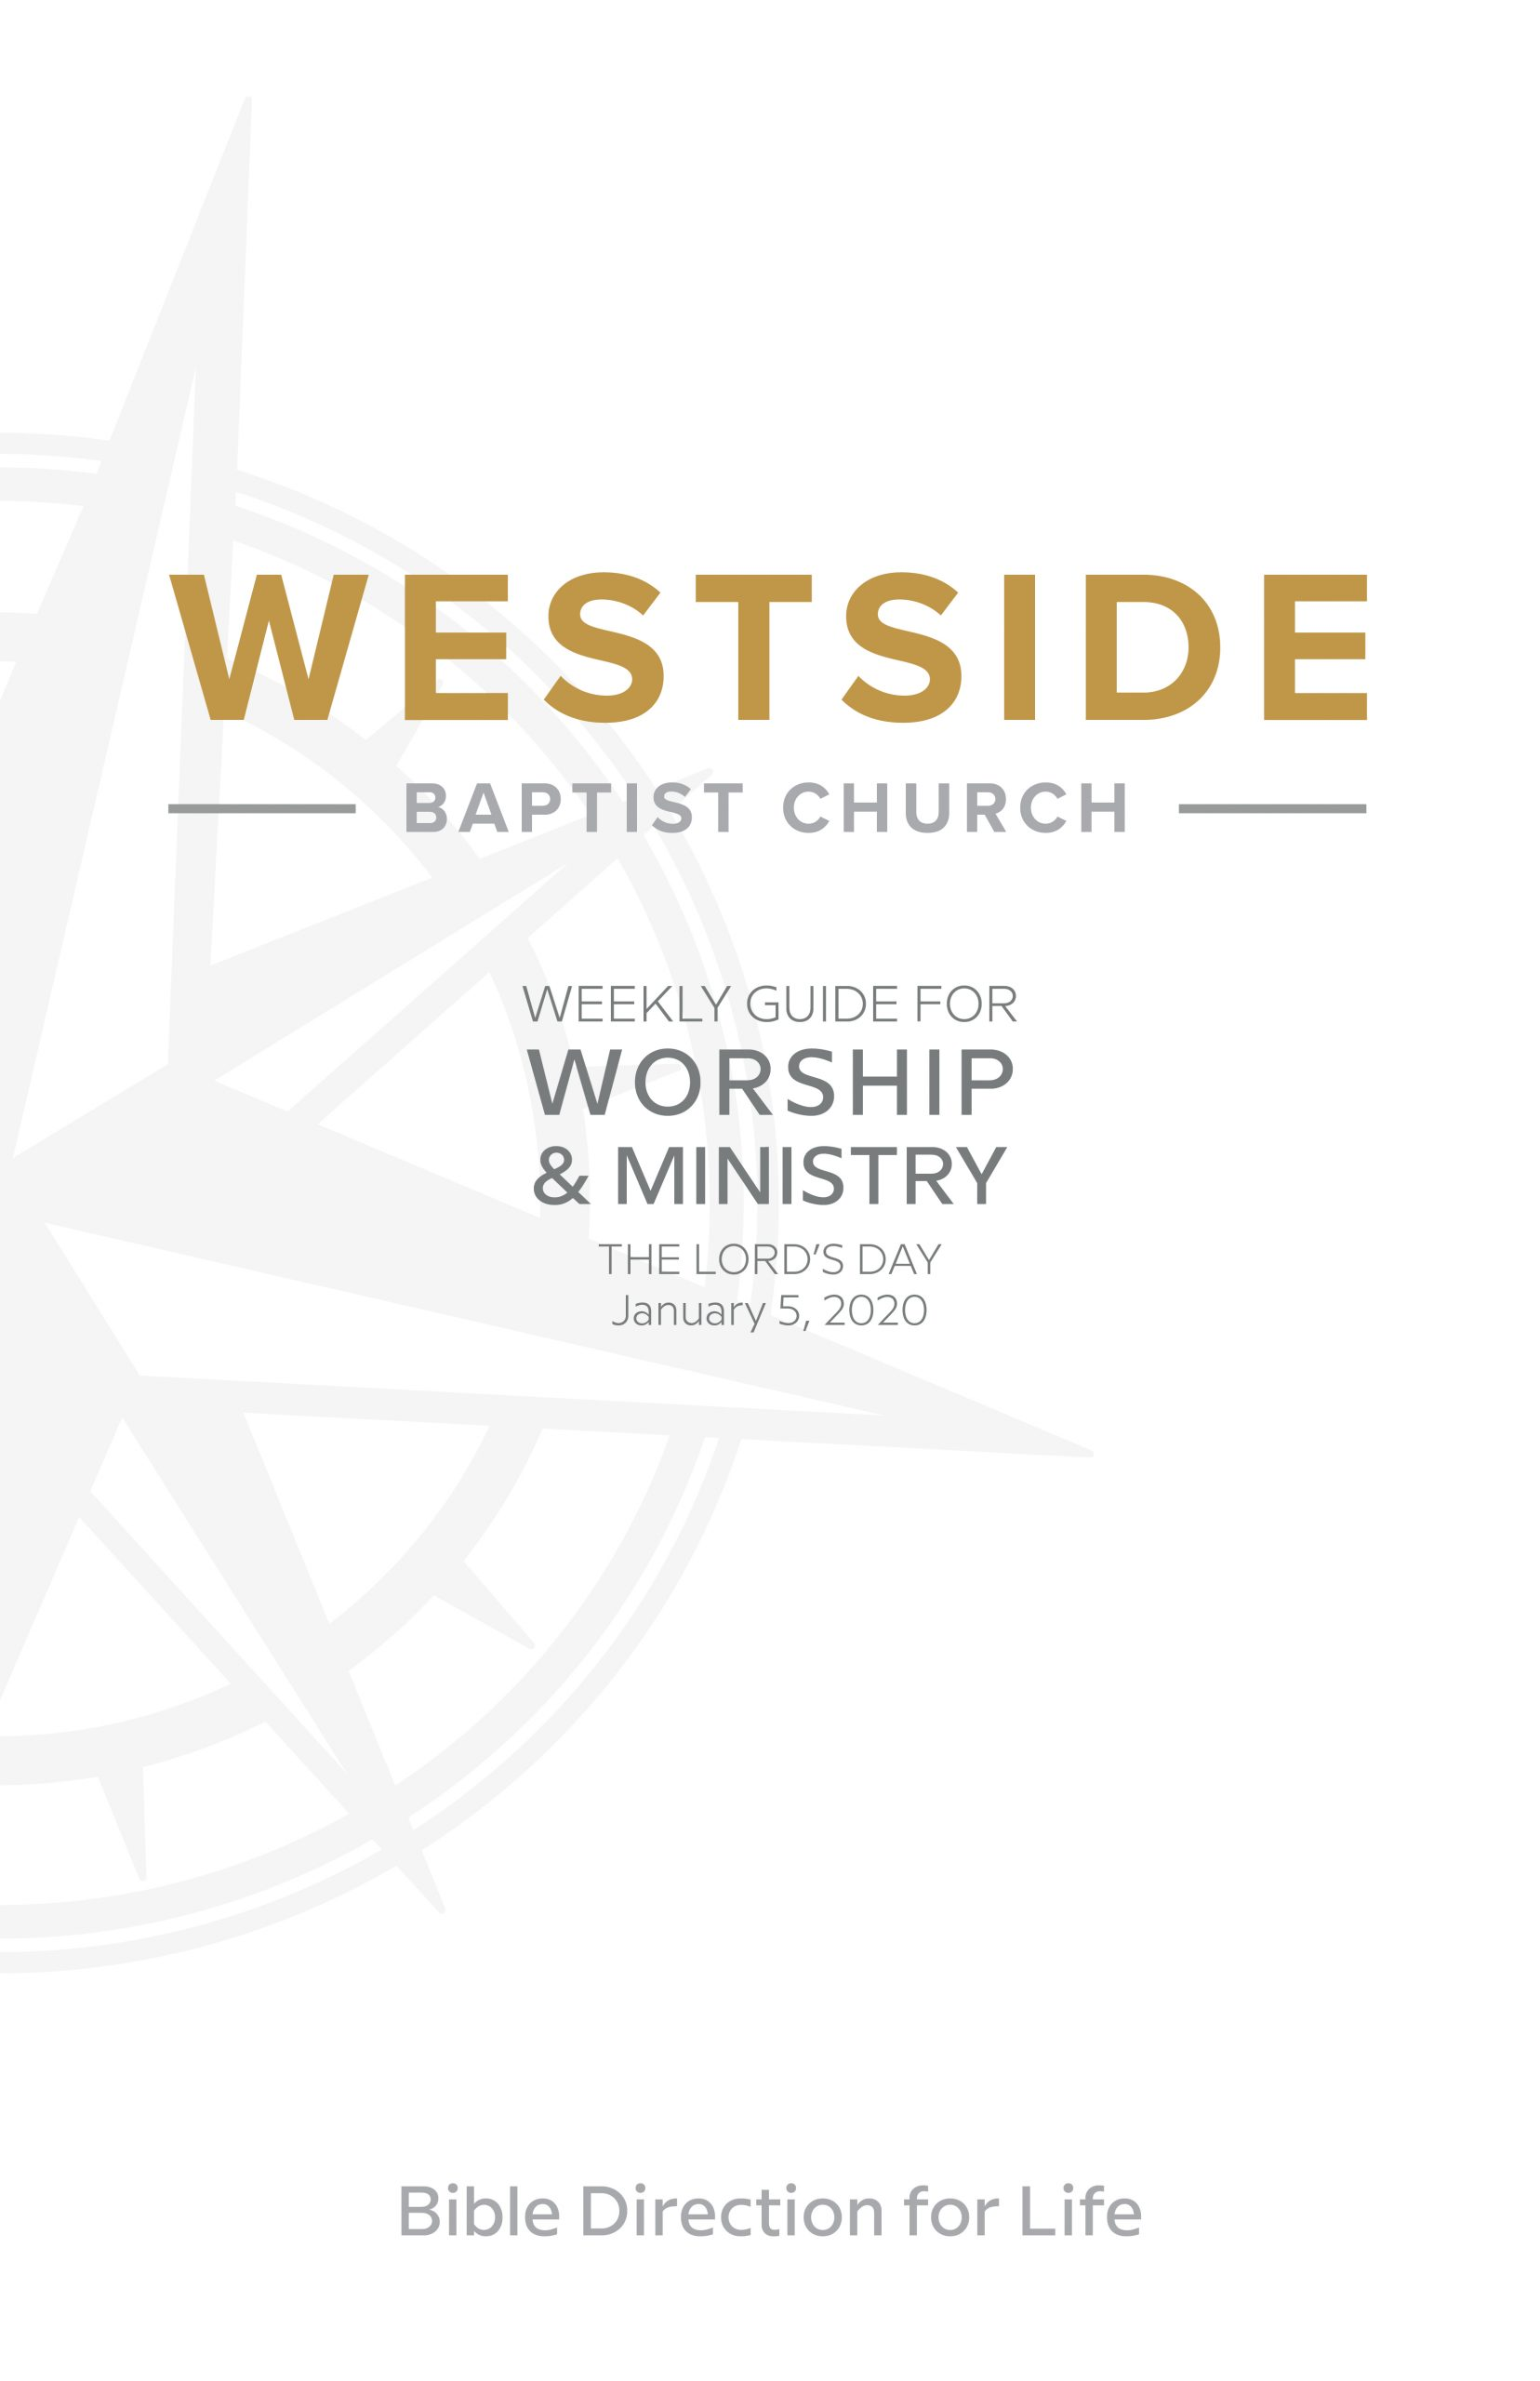 Weekly Guide for Worship and Ministry—January 5